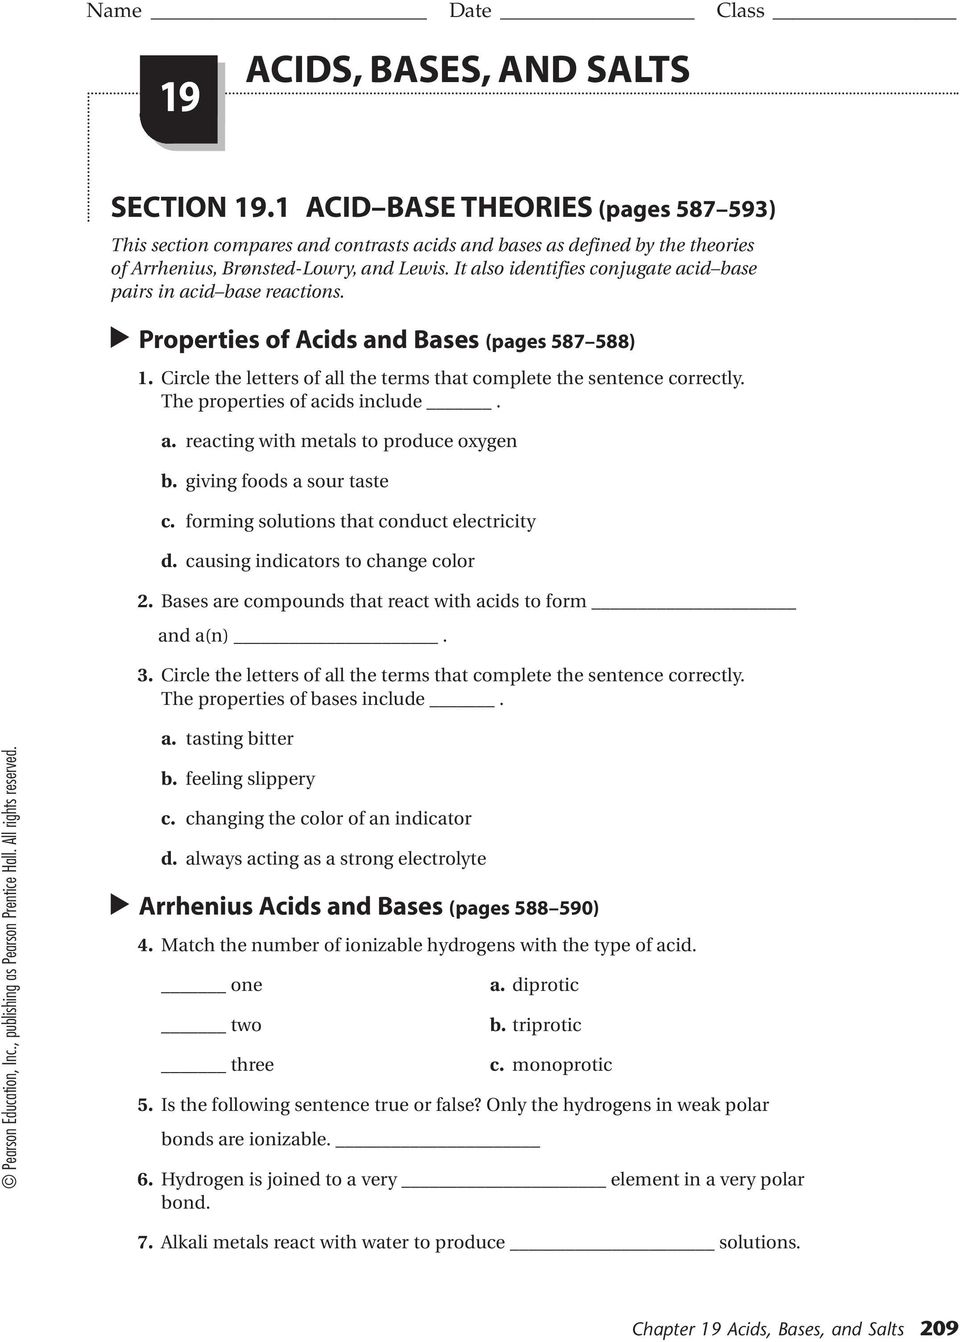 introduction to acids and bases worksheet the best and most comprehensive worksheets. Black Bedroom Furniture Sets. Home Design Ideas